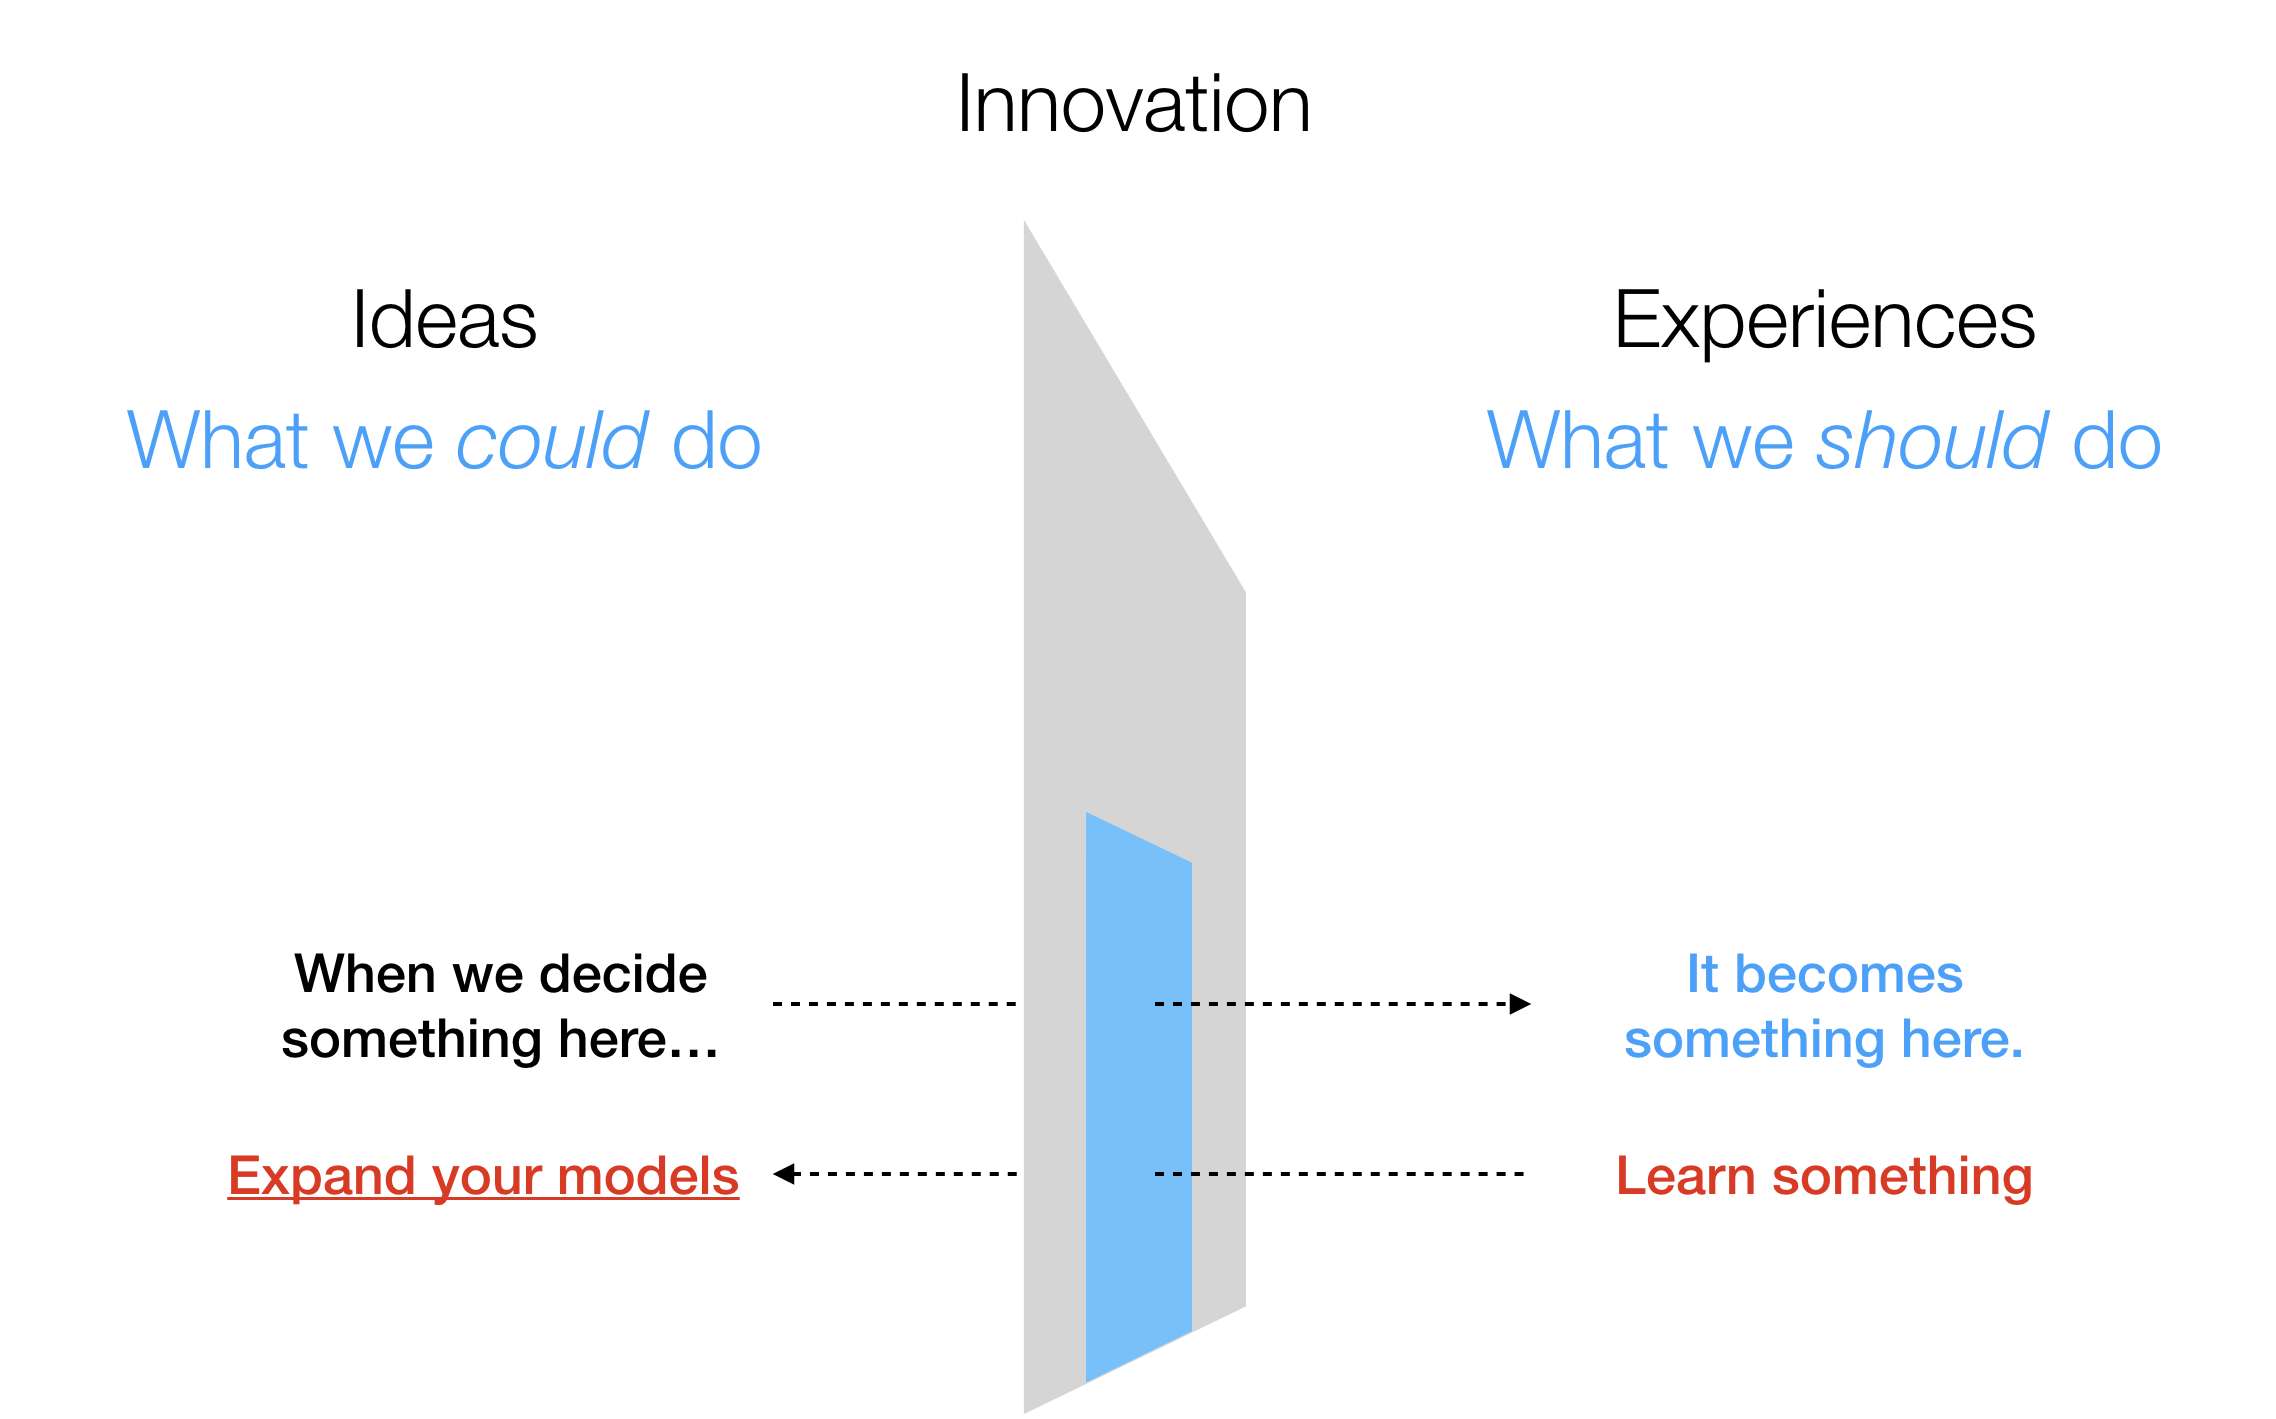 A screen grab from the Welcome Episode, discussing the thinking process behind innovation.